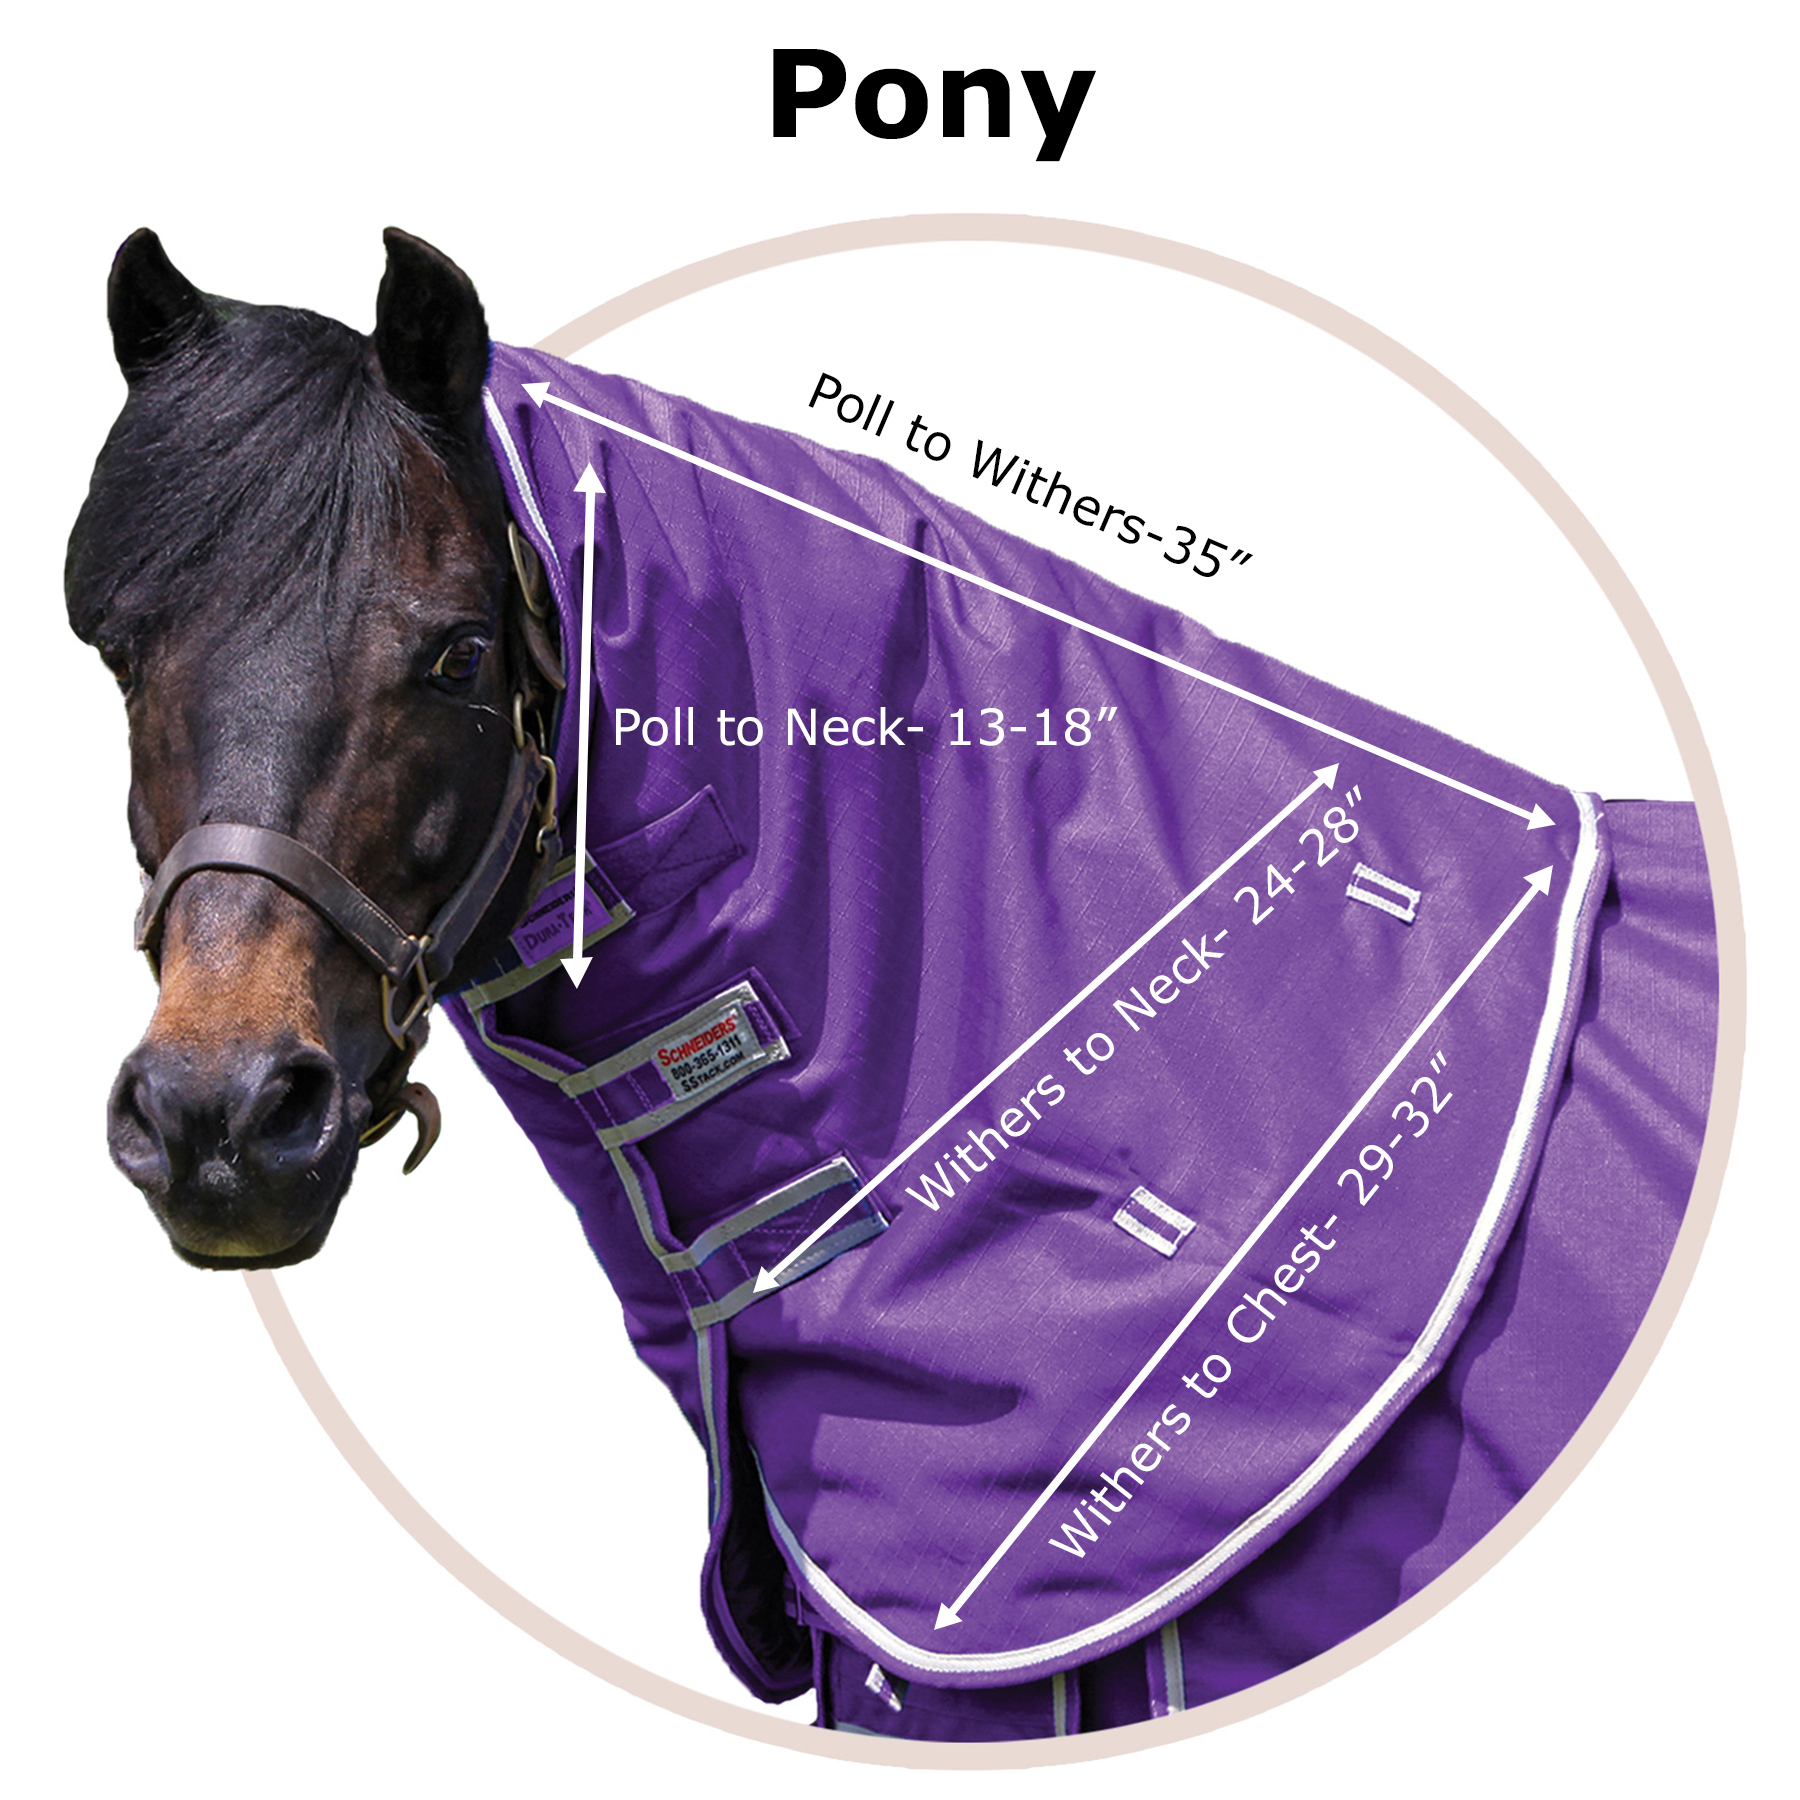 Pony Neck Cover Size Chart